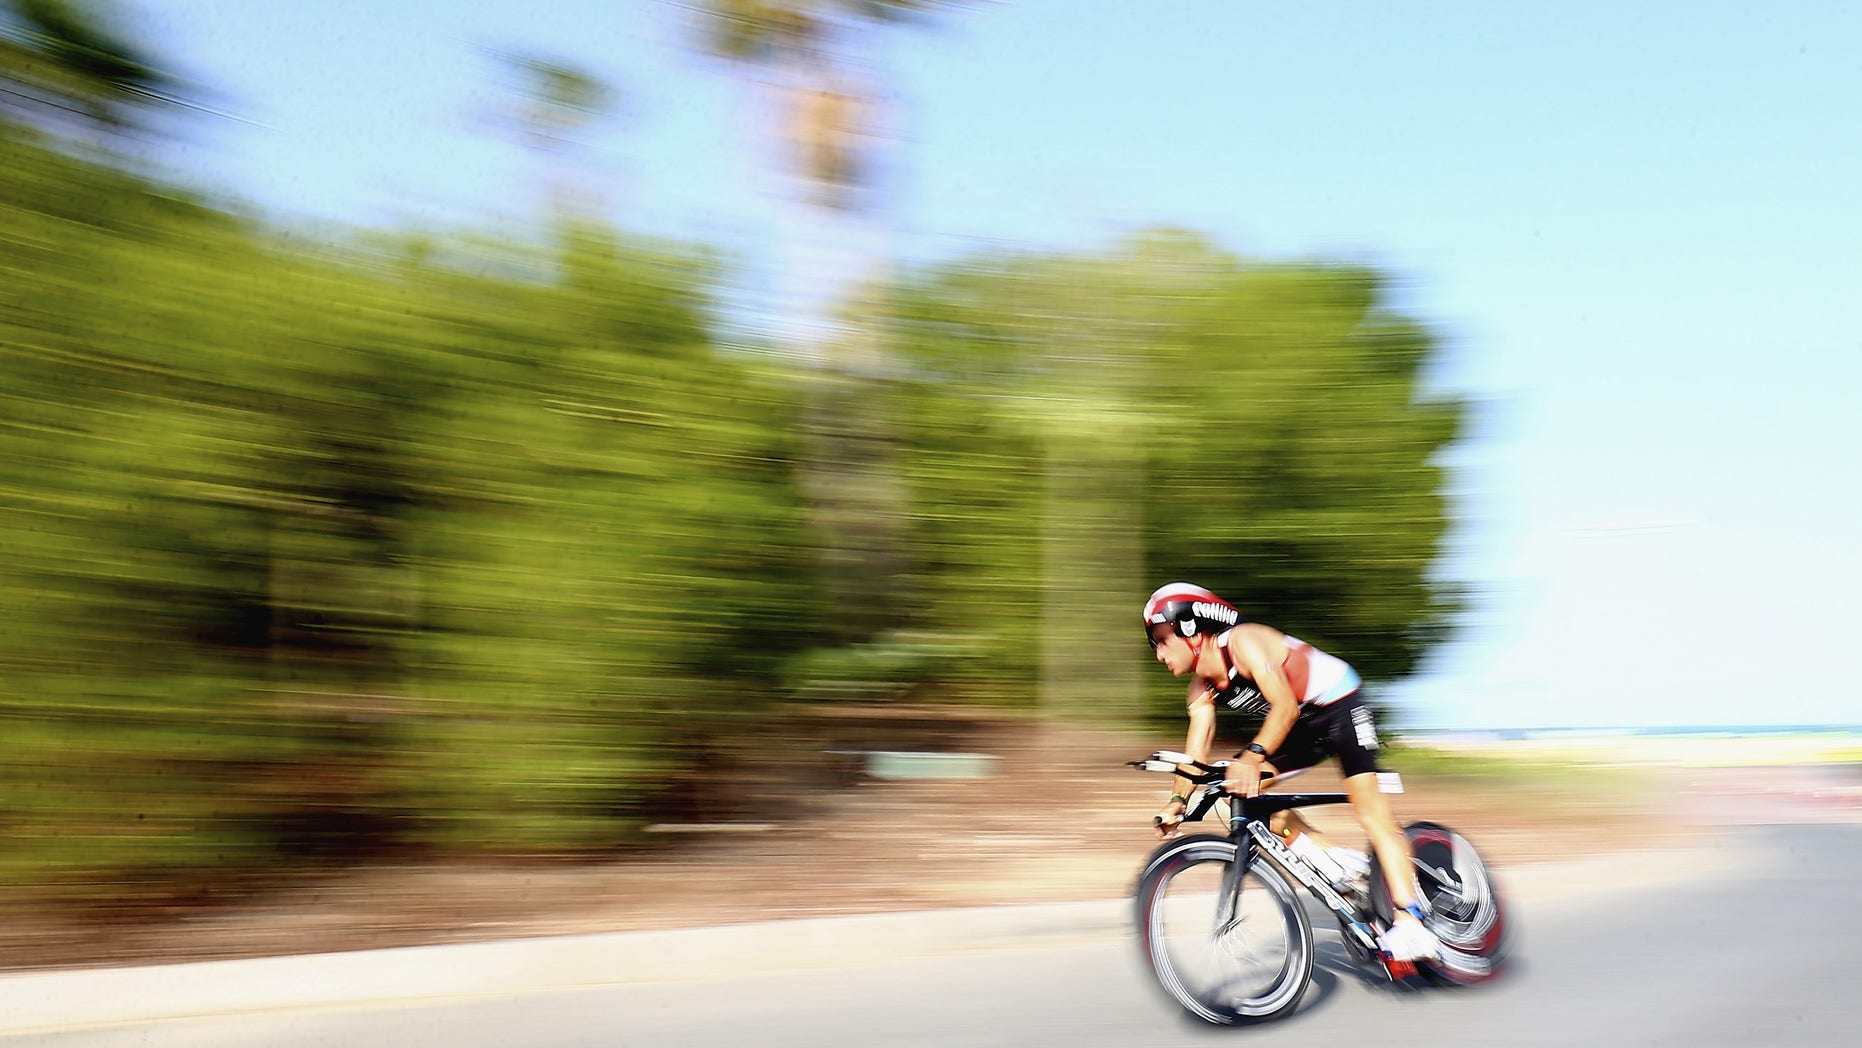 DUBAI, UNITED ARAB EMIRATES - NOVEMBER 07:  Participants compete in the cycle leg of the race during the Dubai International Triathlon at Atlantis, The Palm on November 7, 2014 in Dubai, United Arab Emirates.  (Photo by Francois Nel/Getty Images)